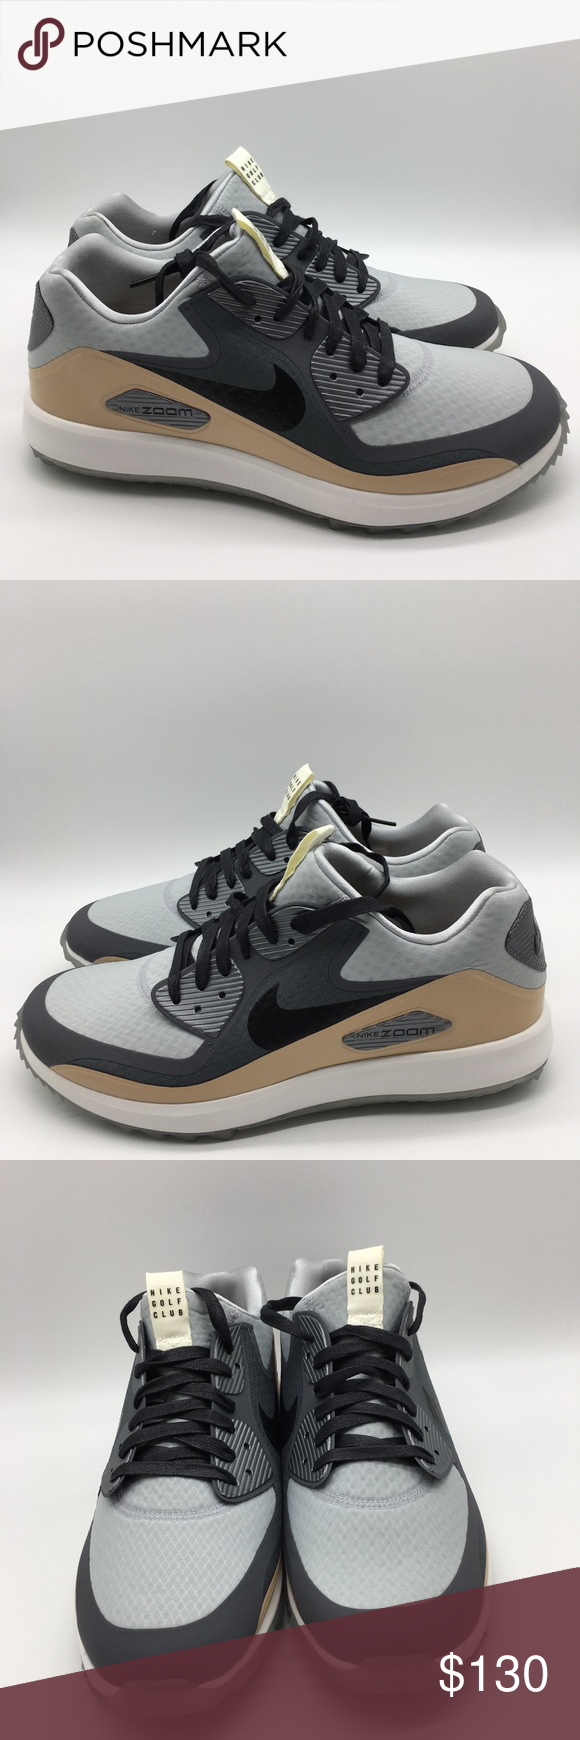 wholesale dealer 45286 33110 Nike Air Zoom 90 IT NGC Size 11.5 Brand new without box ...